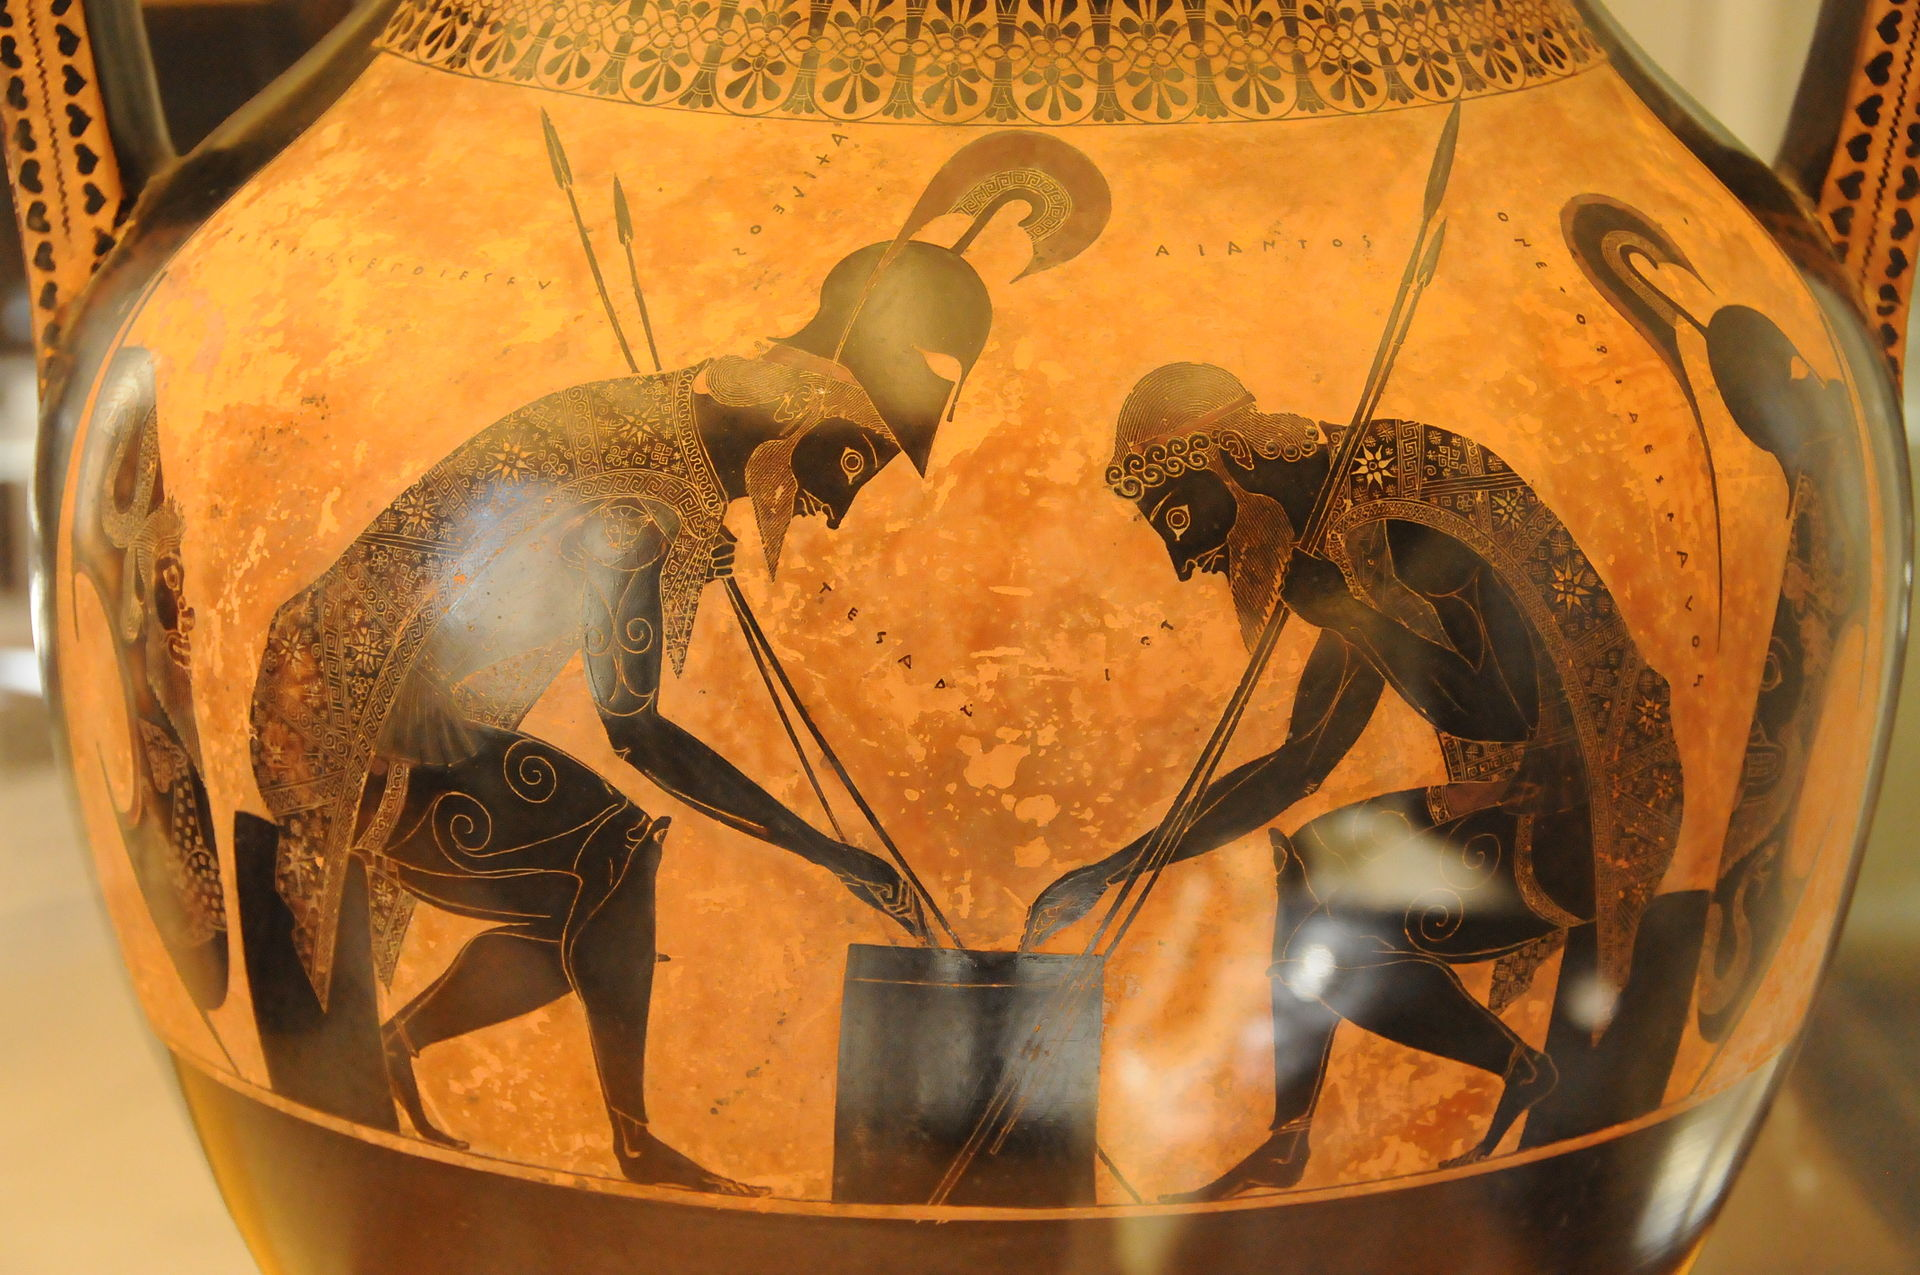 Achilles and Ajax play a board game. They are distinguished from one another by their captions.